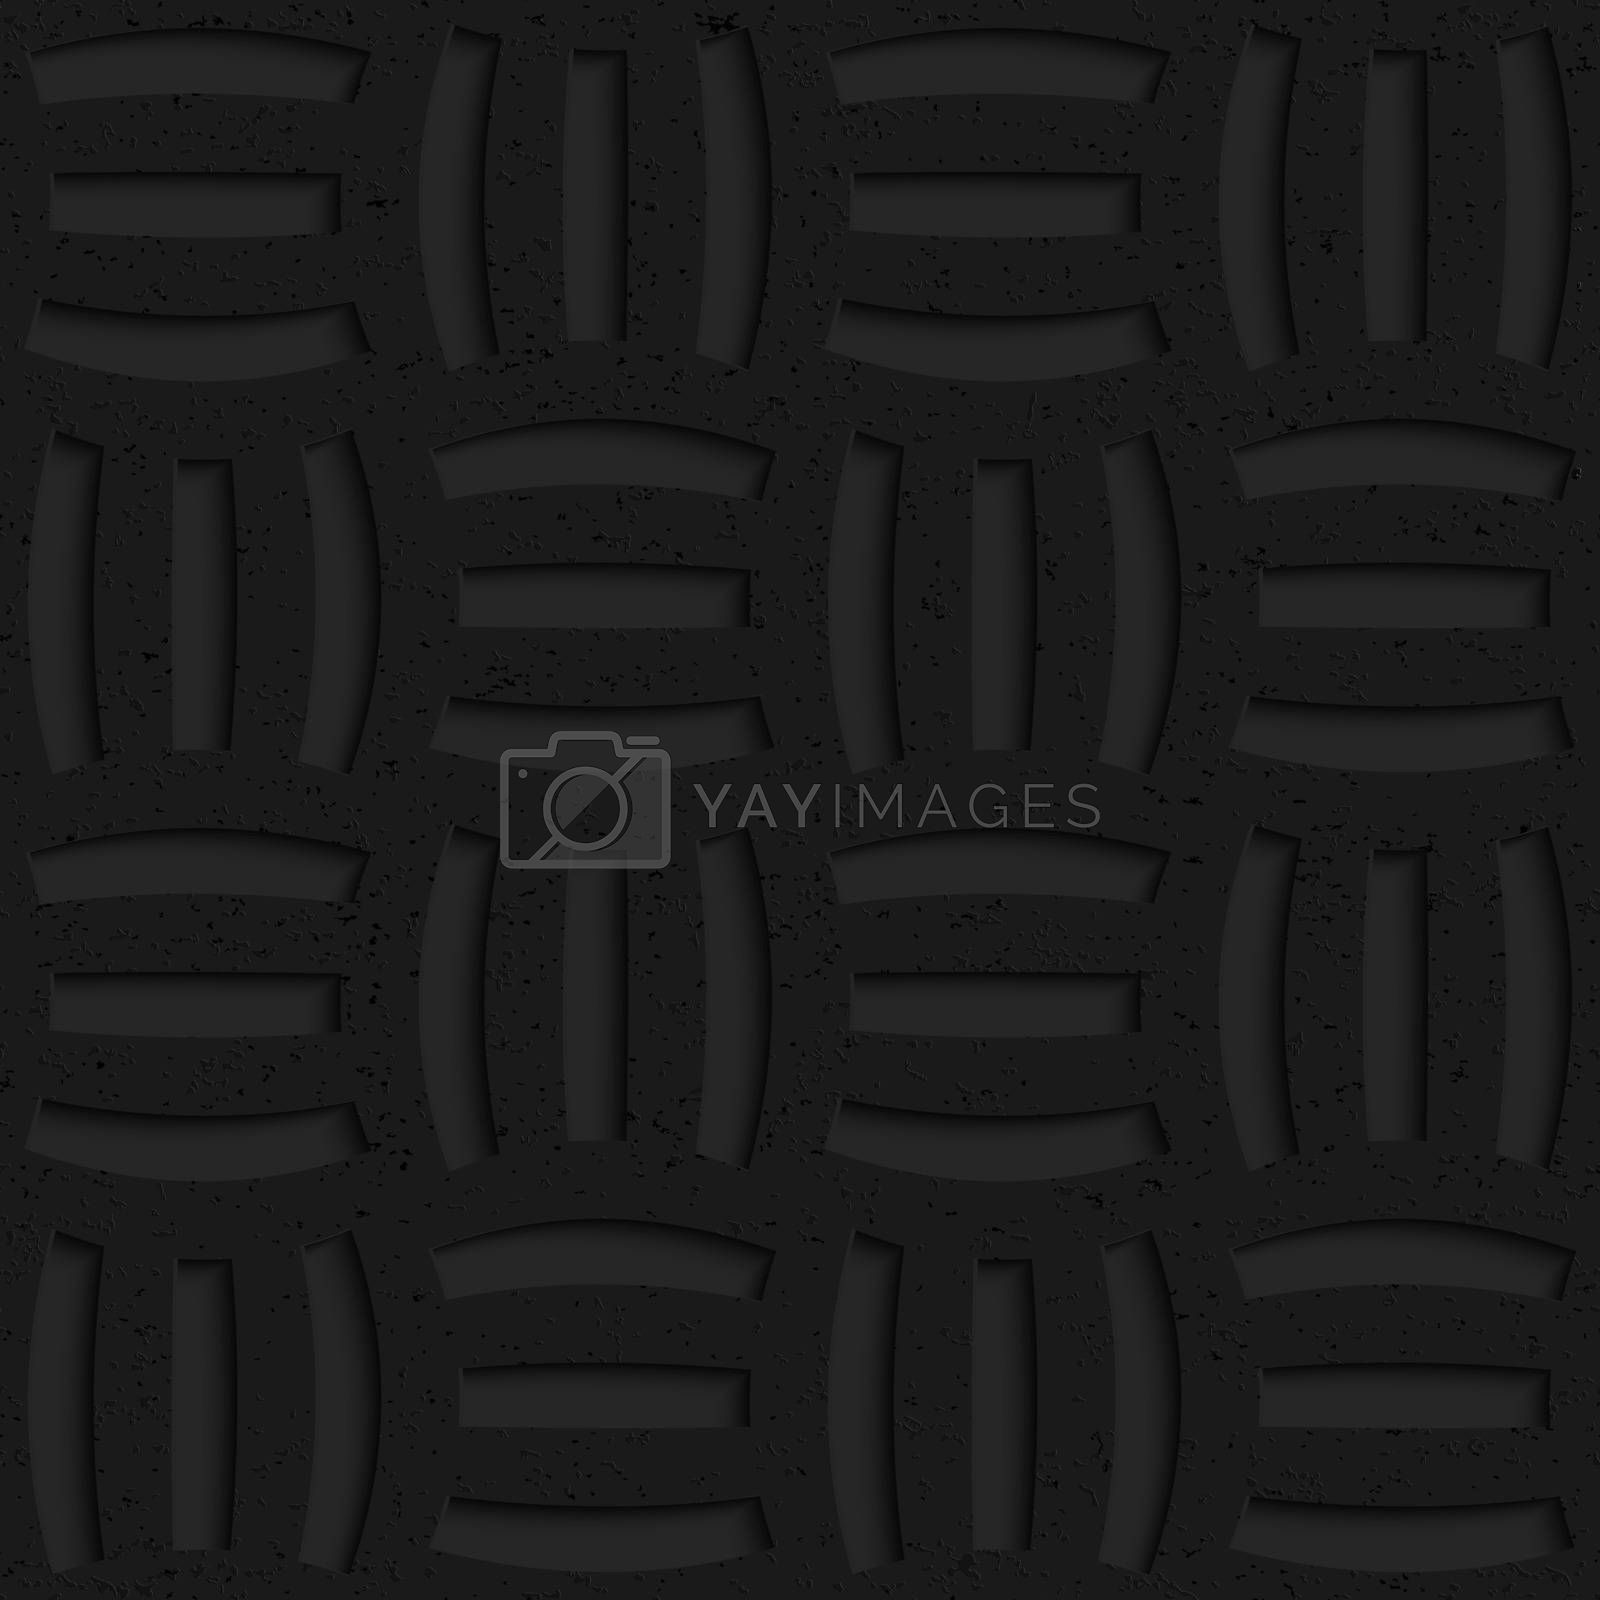 Seamless geometric background. Pattern with 3D texture and realistic shadow.Textured black plastic three holes pin will.